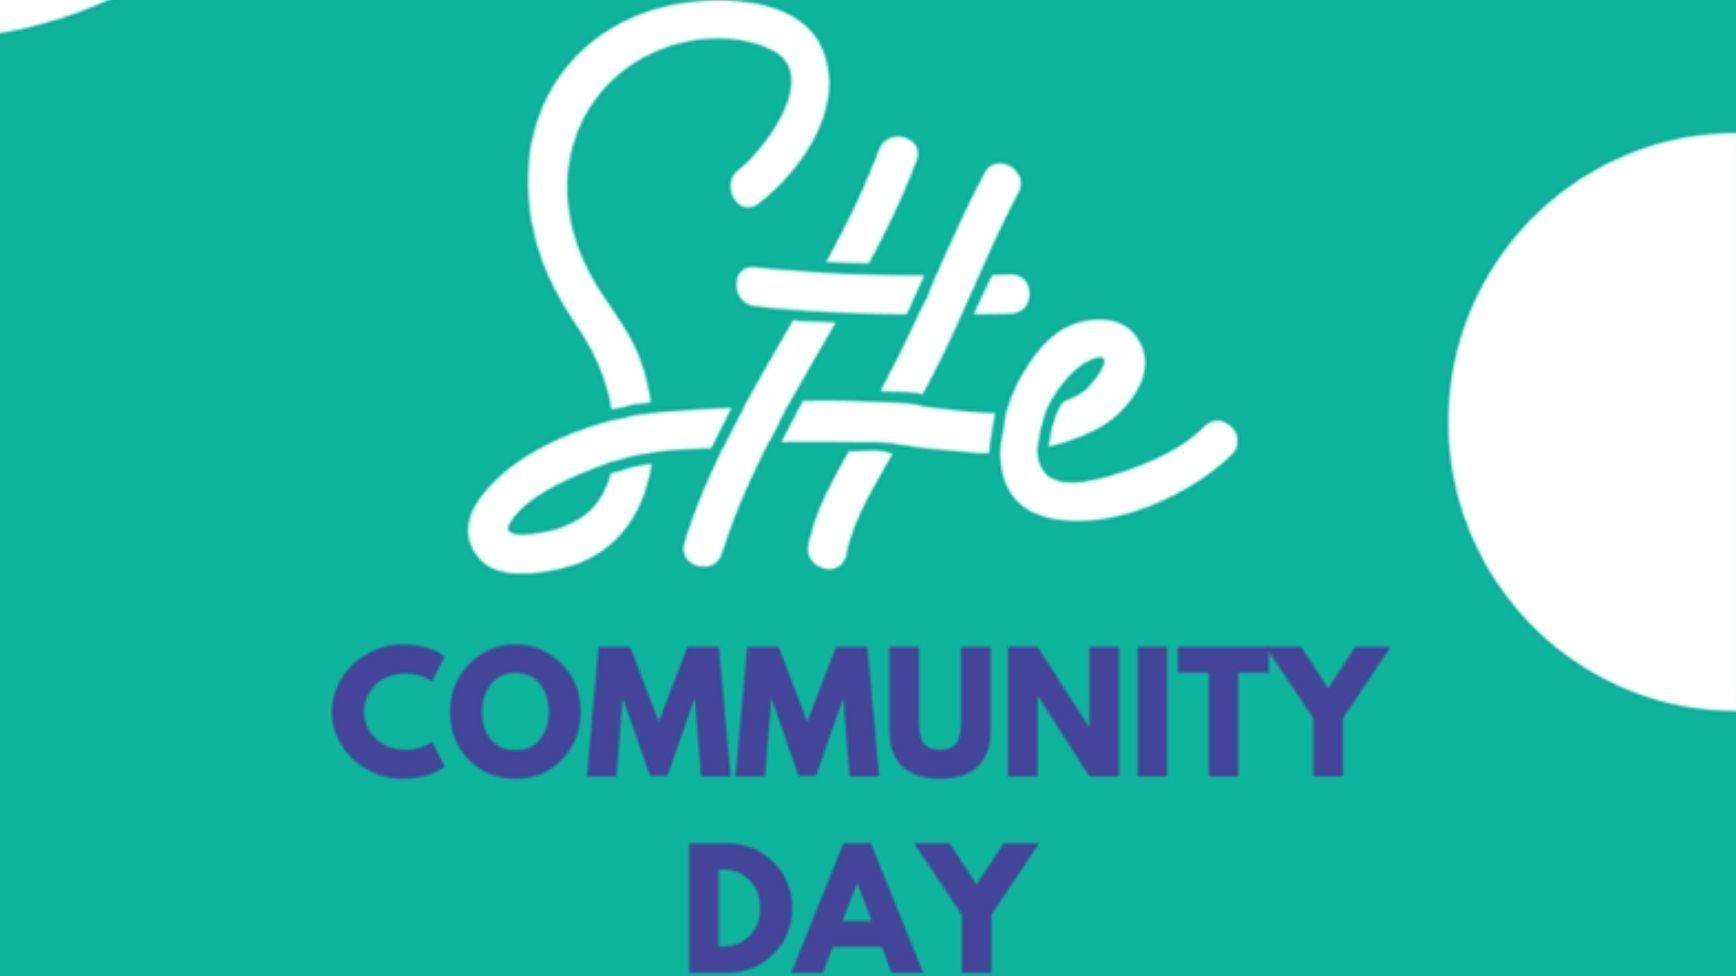 SheSharp Community Day